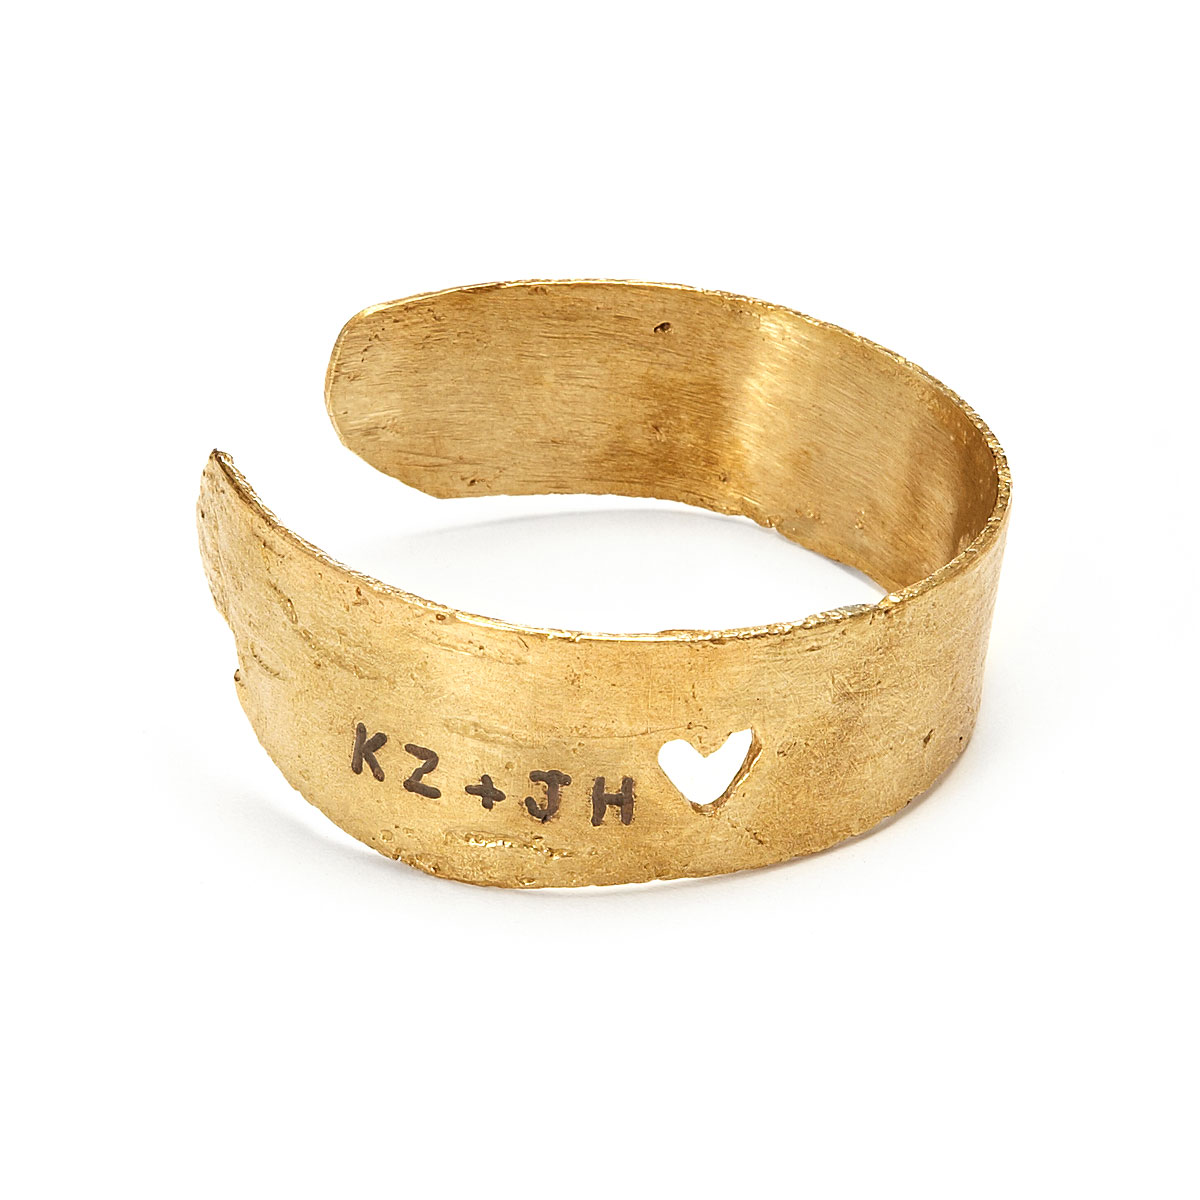 This bracelet is handmade from birch bark and custom engraved with the initials of you and your sweetie. If you can't carve into a tree, this might be the next best (better?) thing! Find it  Here